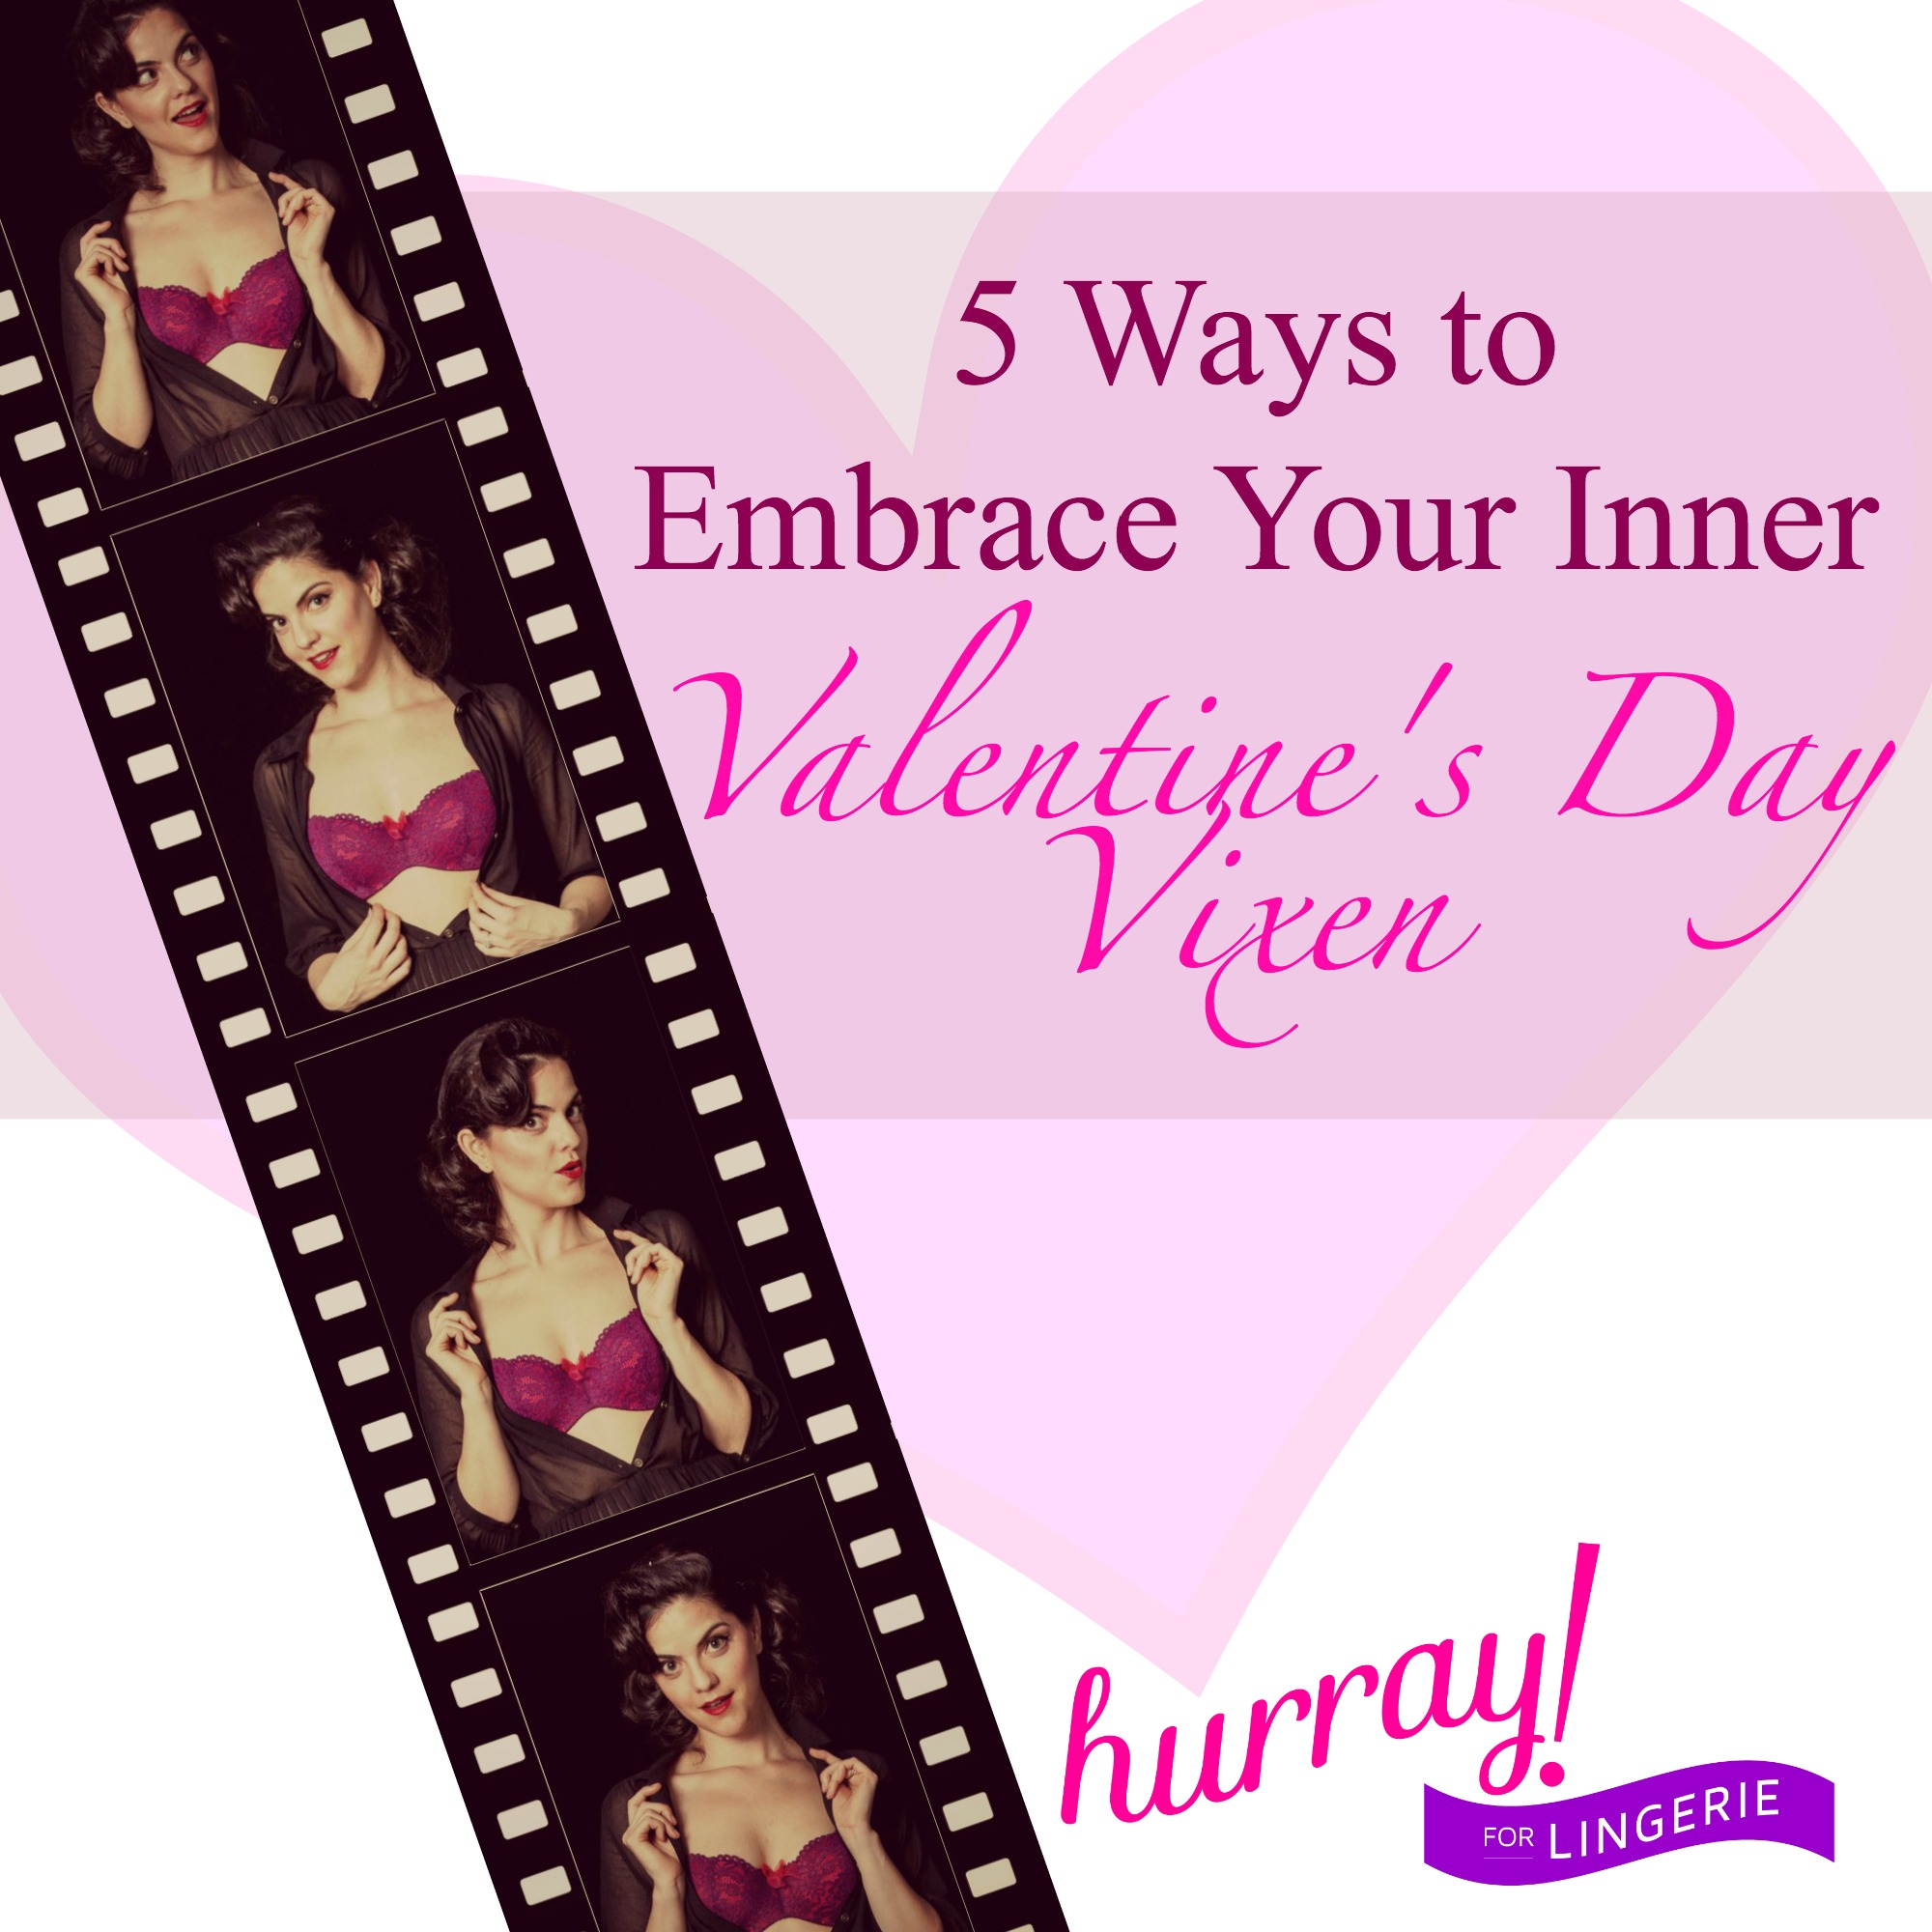 5 Ways to Embrace Your Inner Valentine's Day Vixen